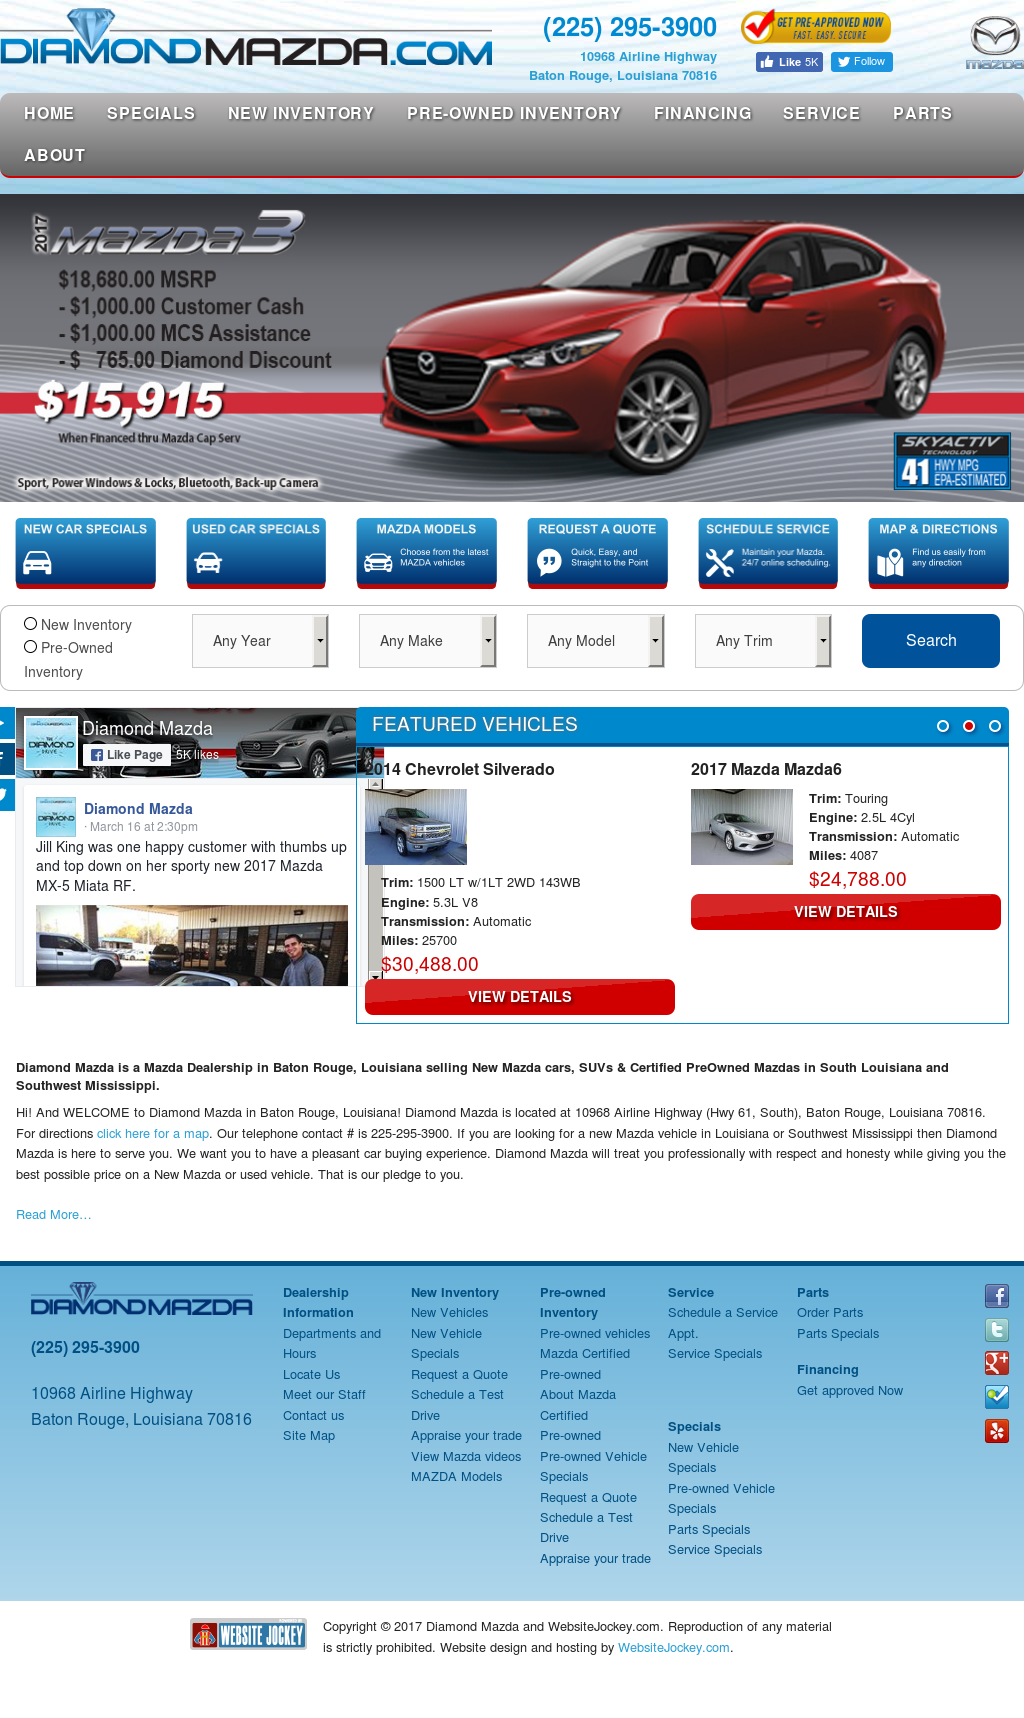 Diamondmazda Website History